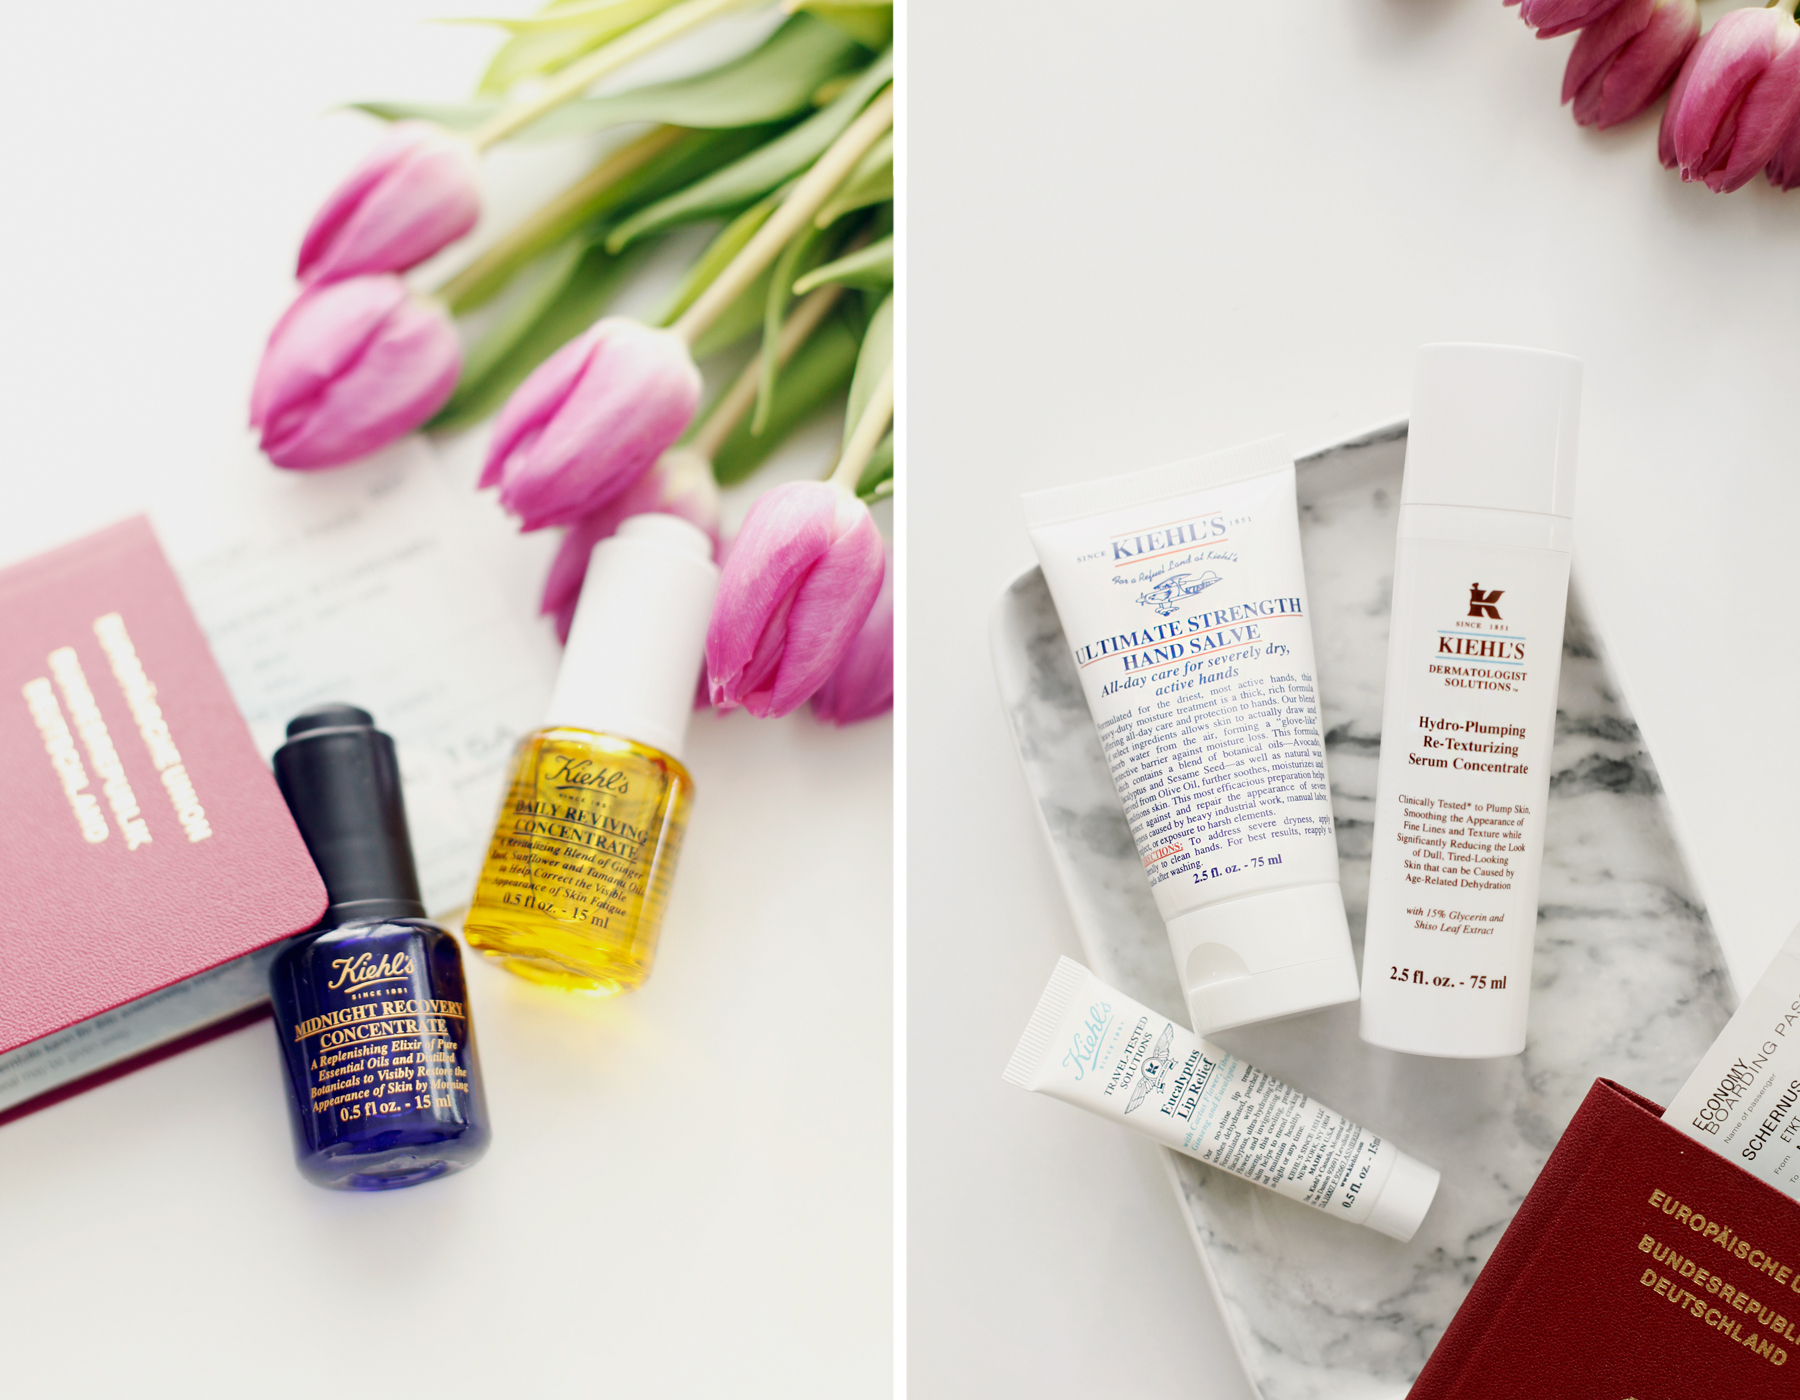 kiehl's travel essentials reise new york city world of kiehl's travelling miniature beauty beautyblogger handgepäck hand luggage sunglasses miu miu beauty tipps und tricks daily revival cats & dogs ricarda schernus beautyblogger düsseldorf 1